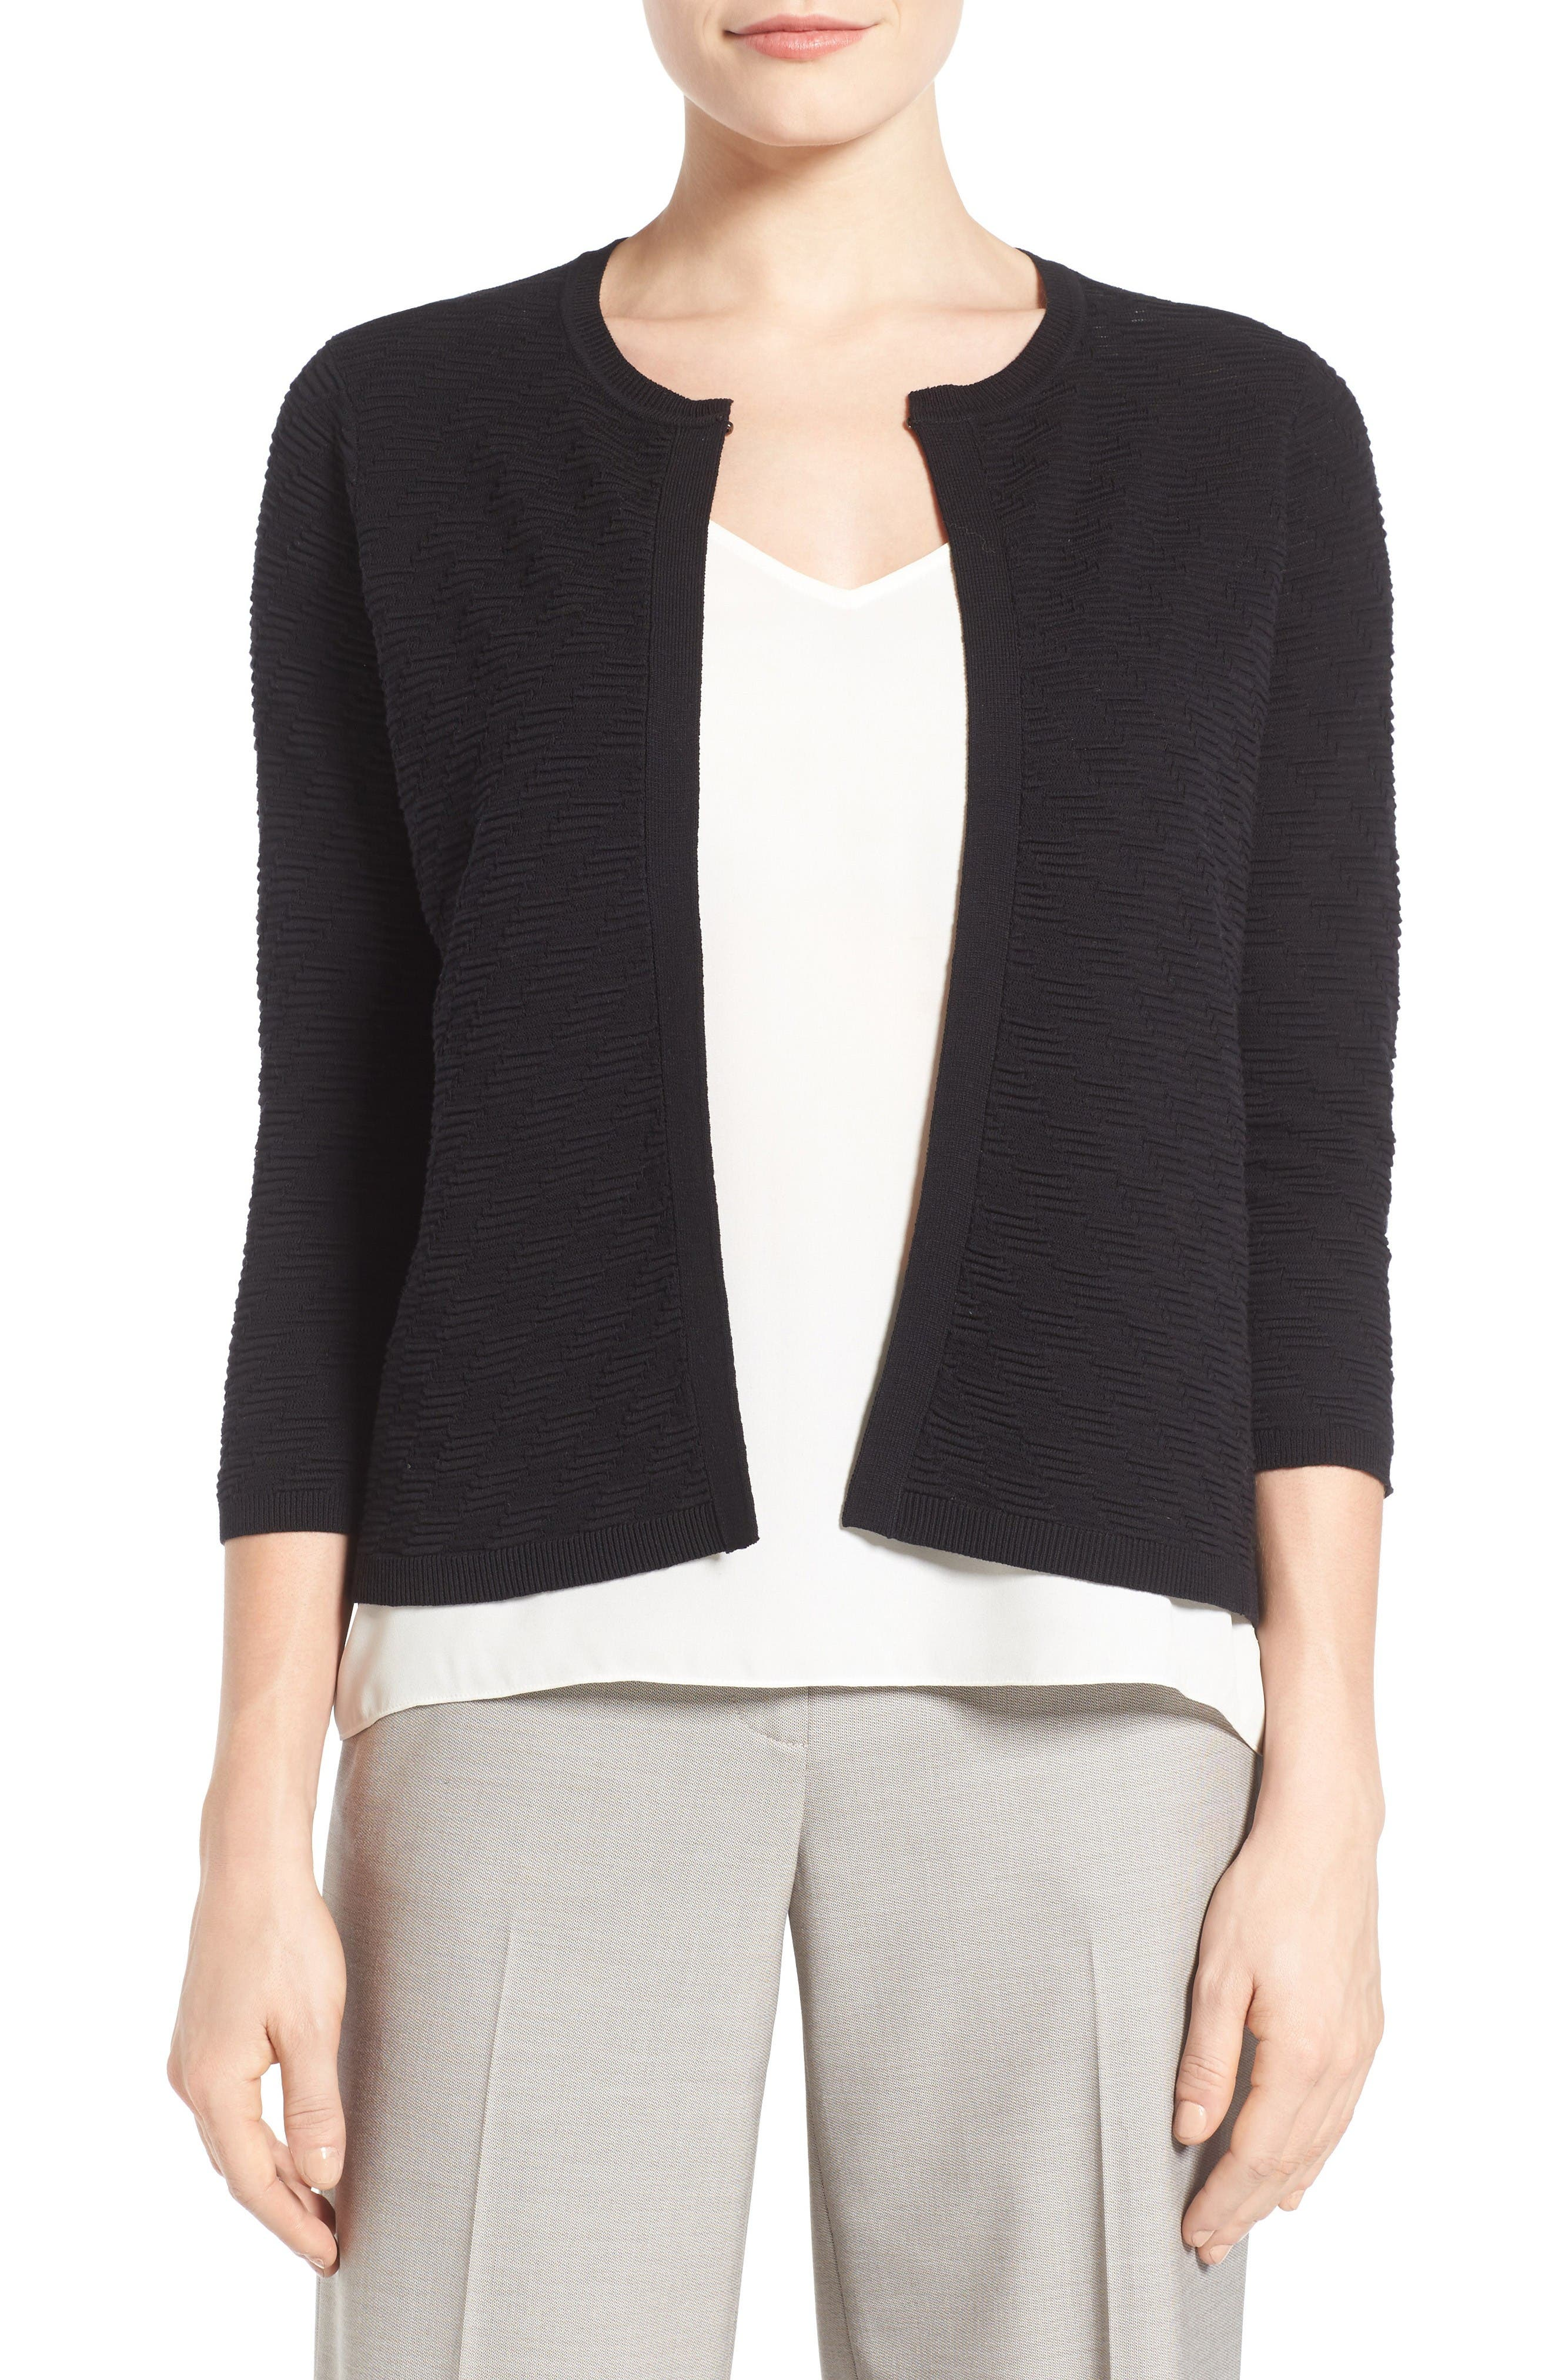 EMERSON ROSE Cotton Blend Textured Cardigan